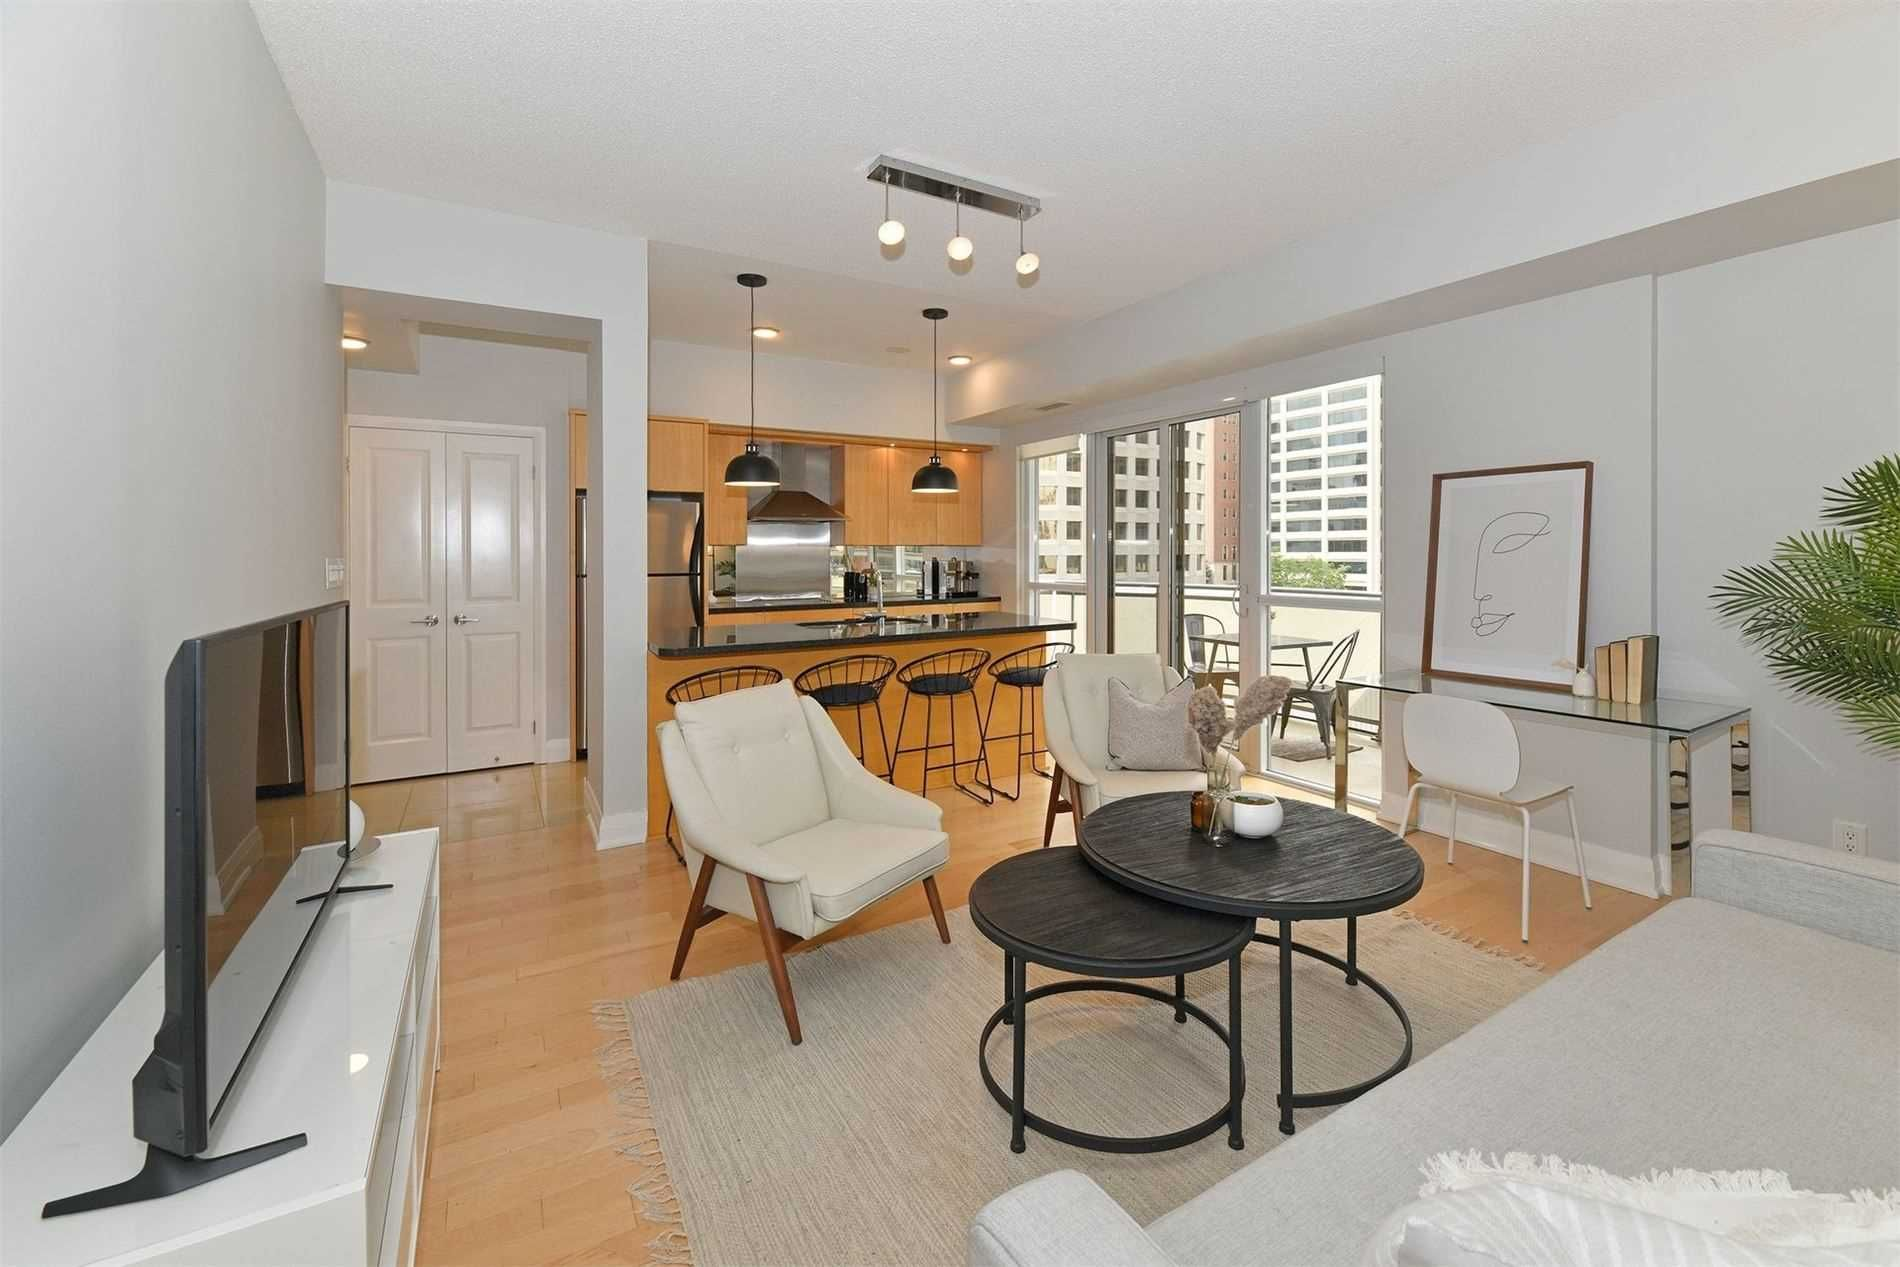 1430 Yonge St, unit 511 for sale in Toronto - image #2